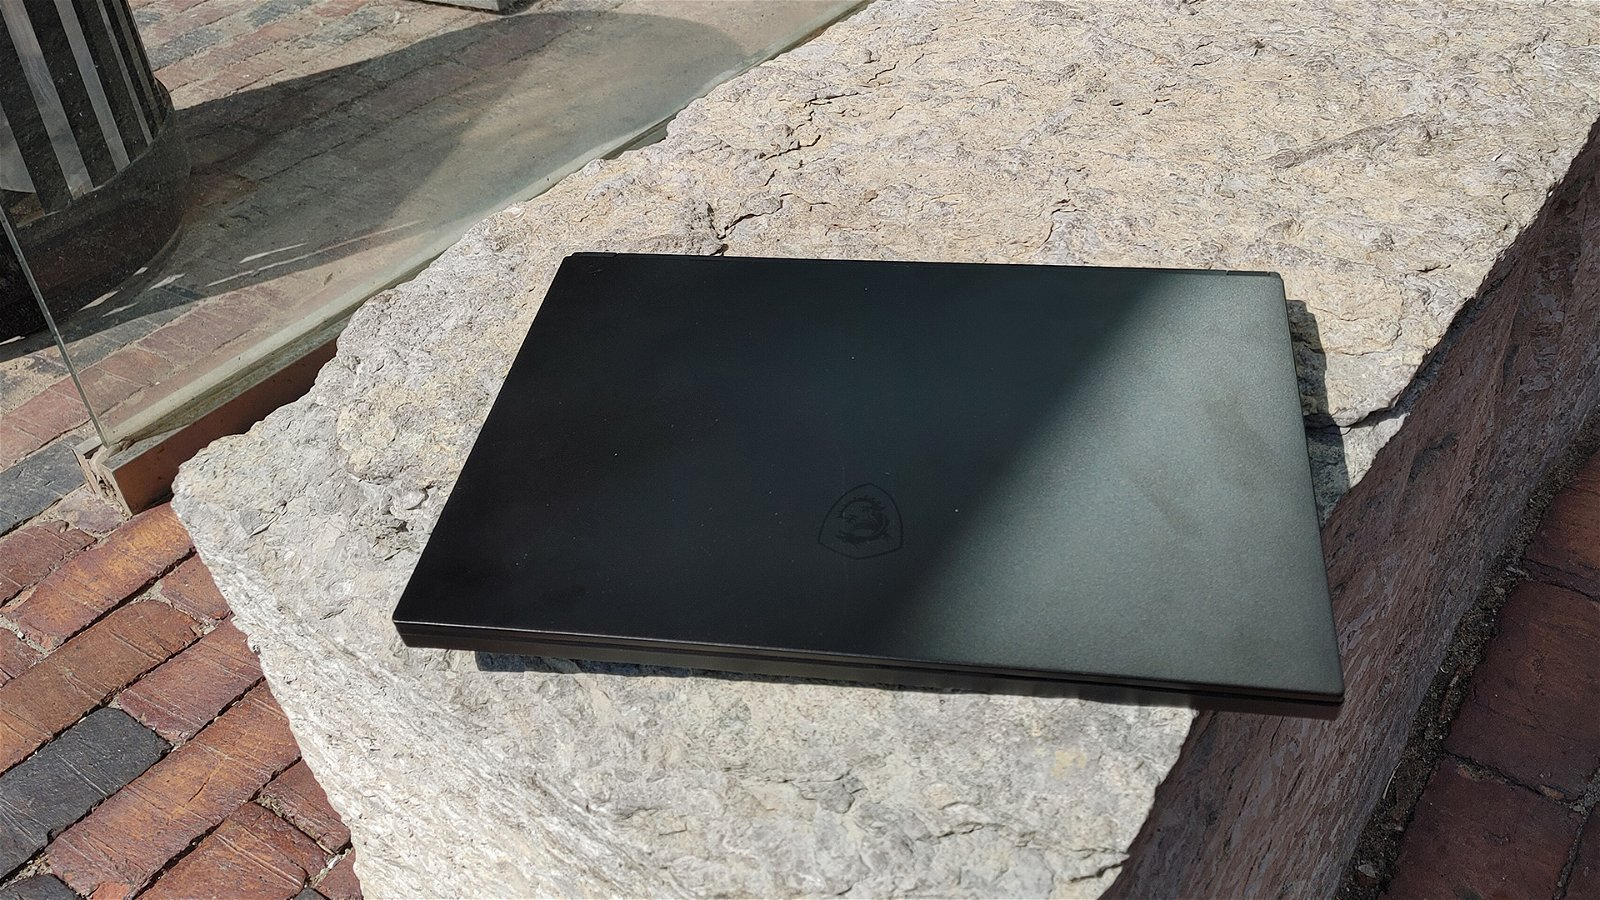 MSI GS66 Stealth Laptop Review 1